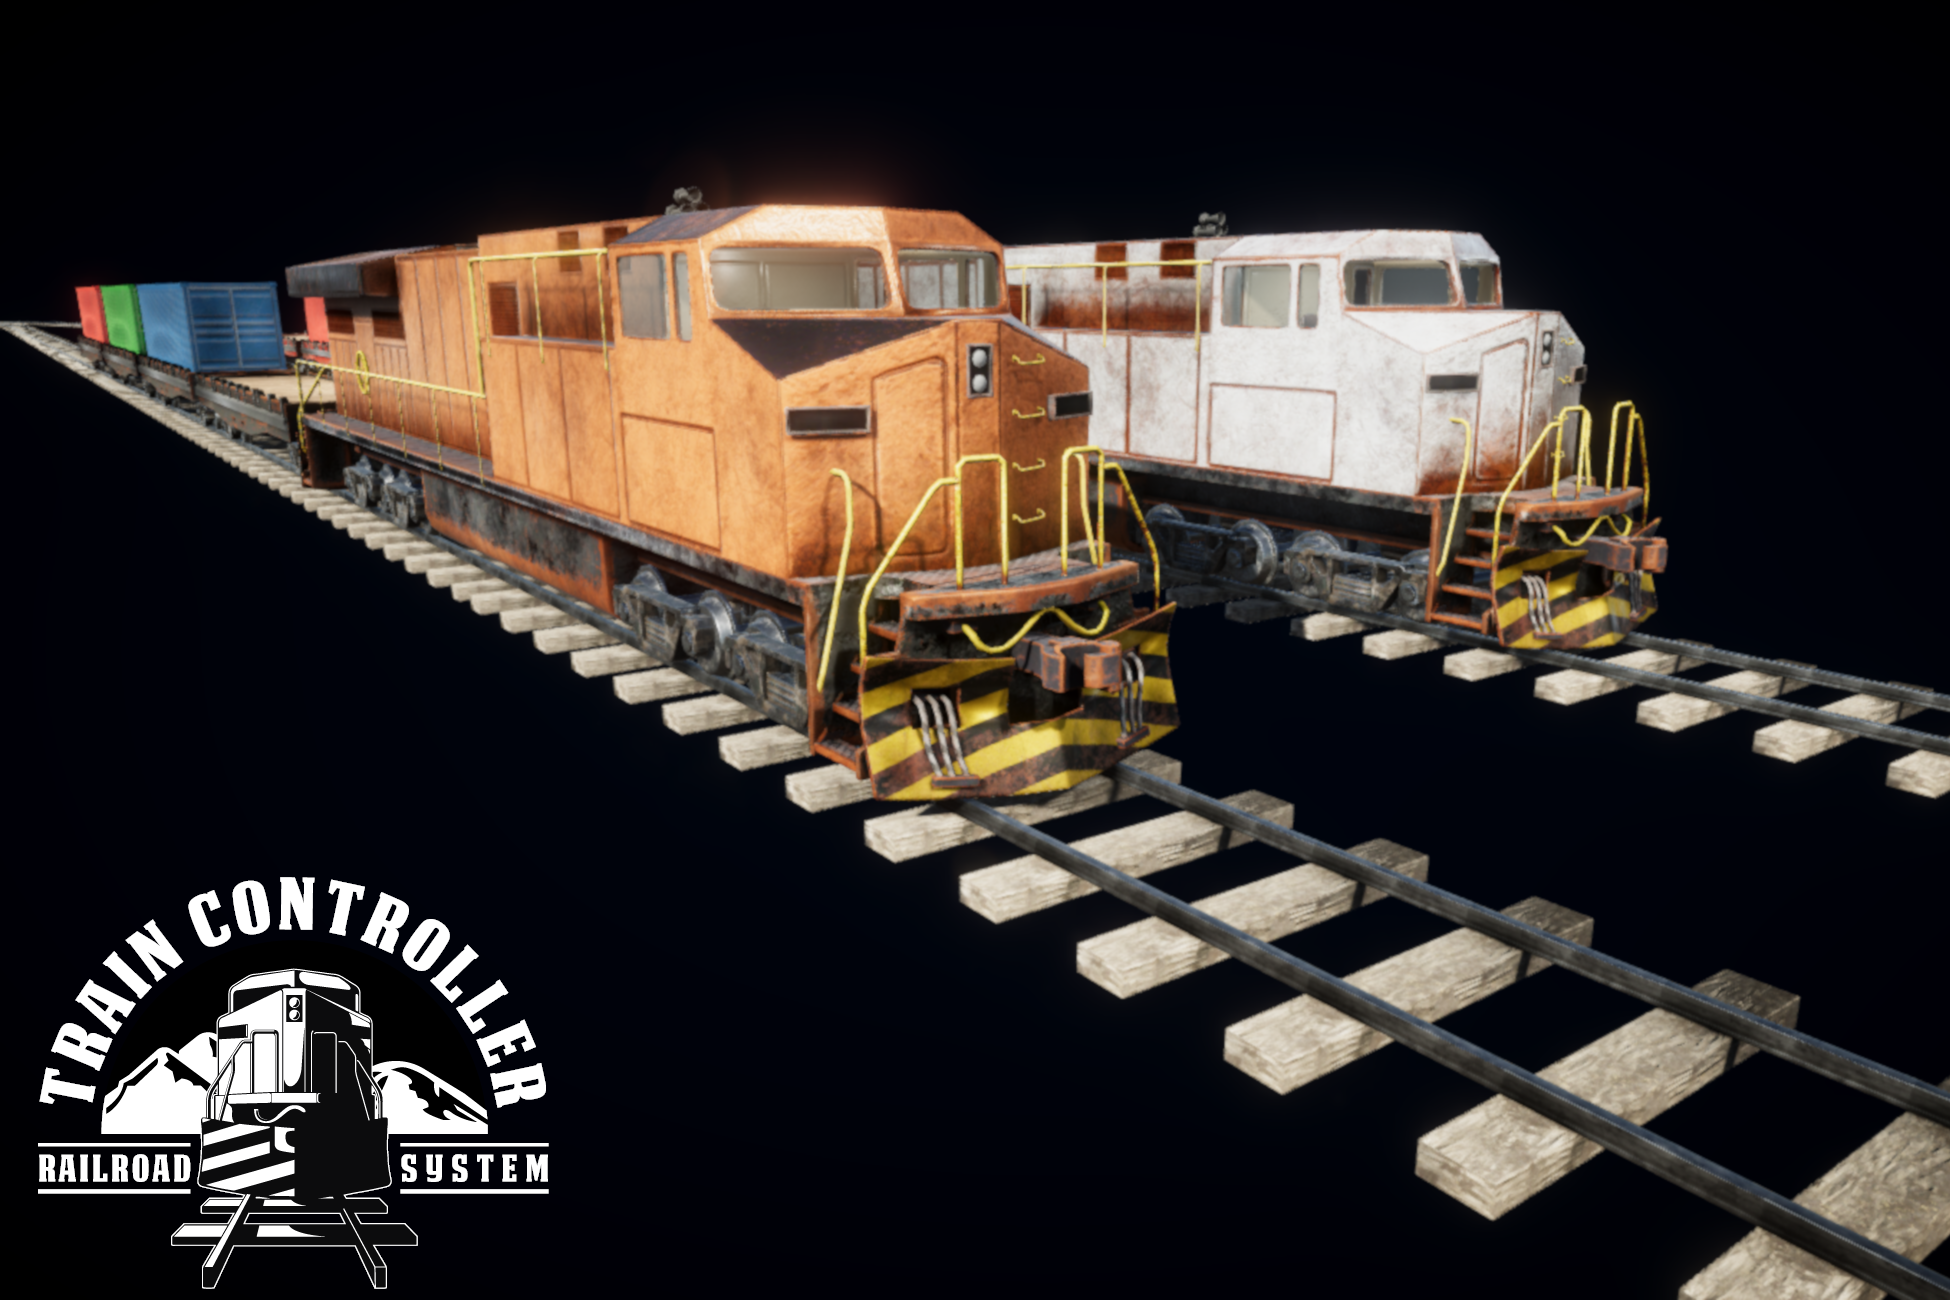 Train Controller (Railroad System) for Unity 3D